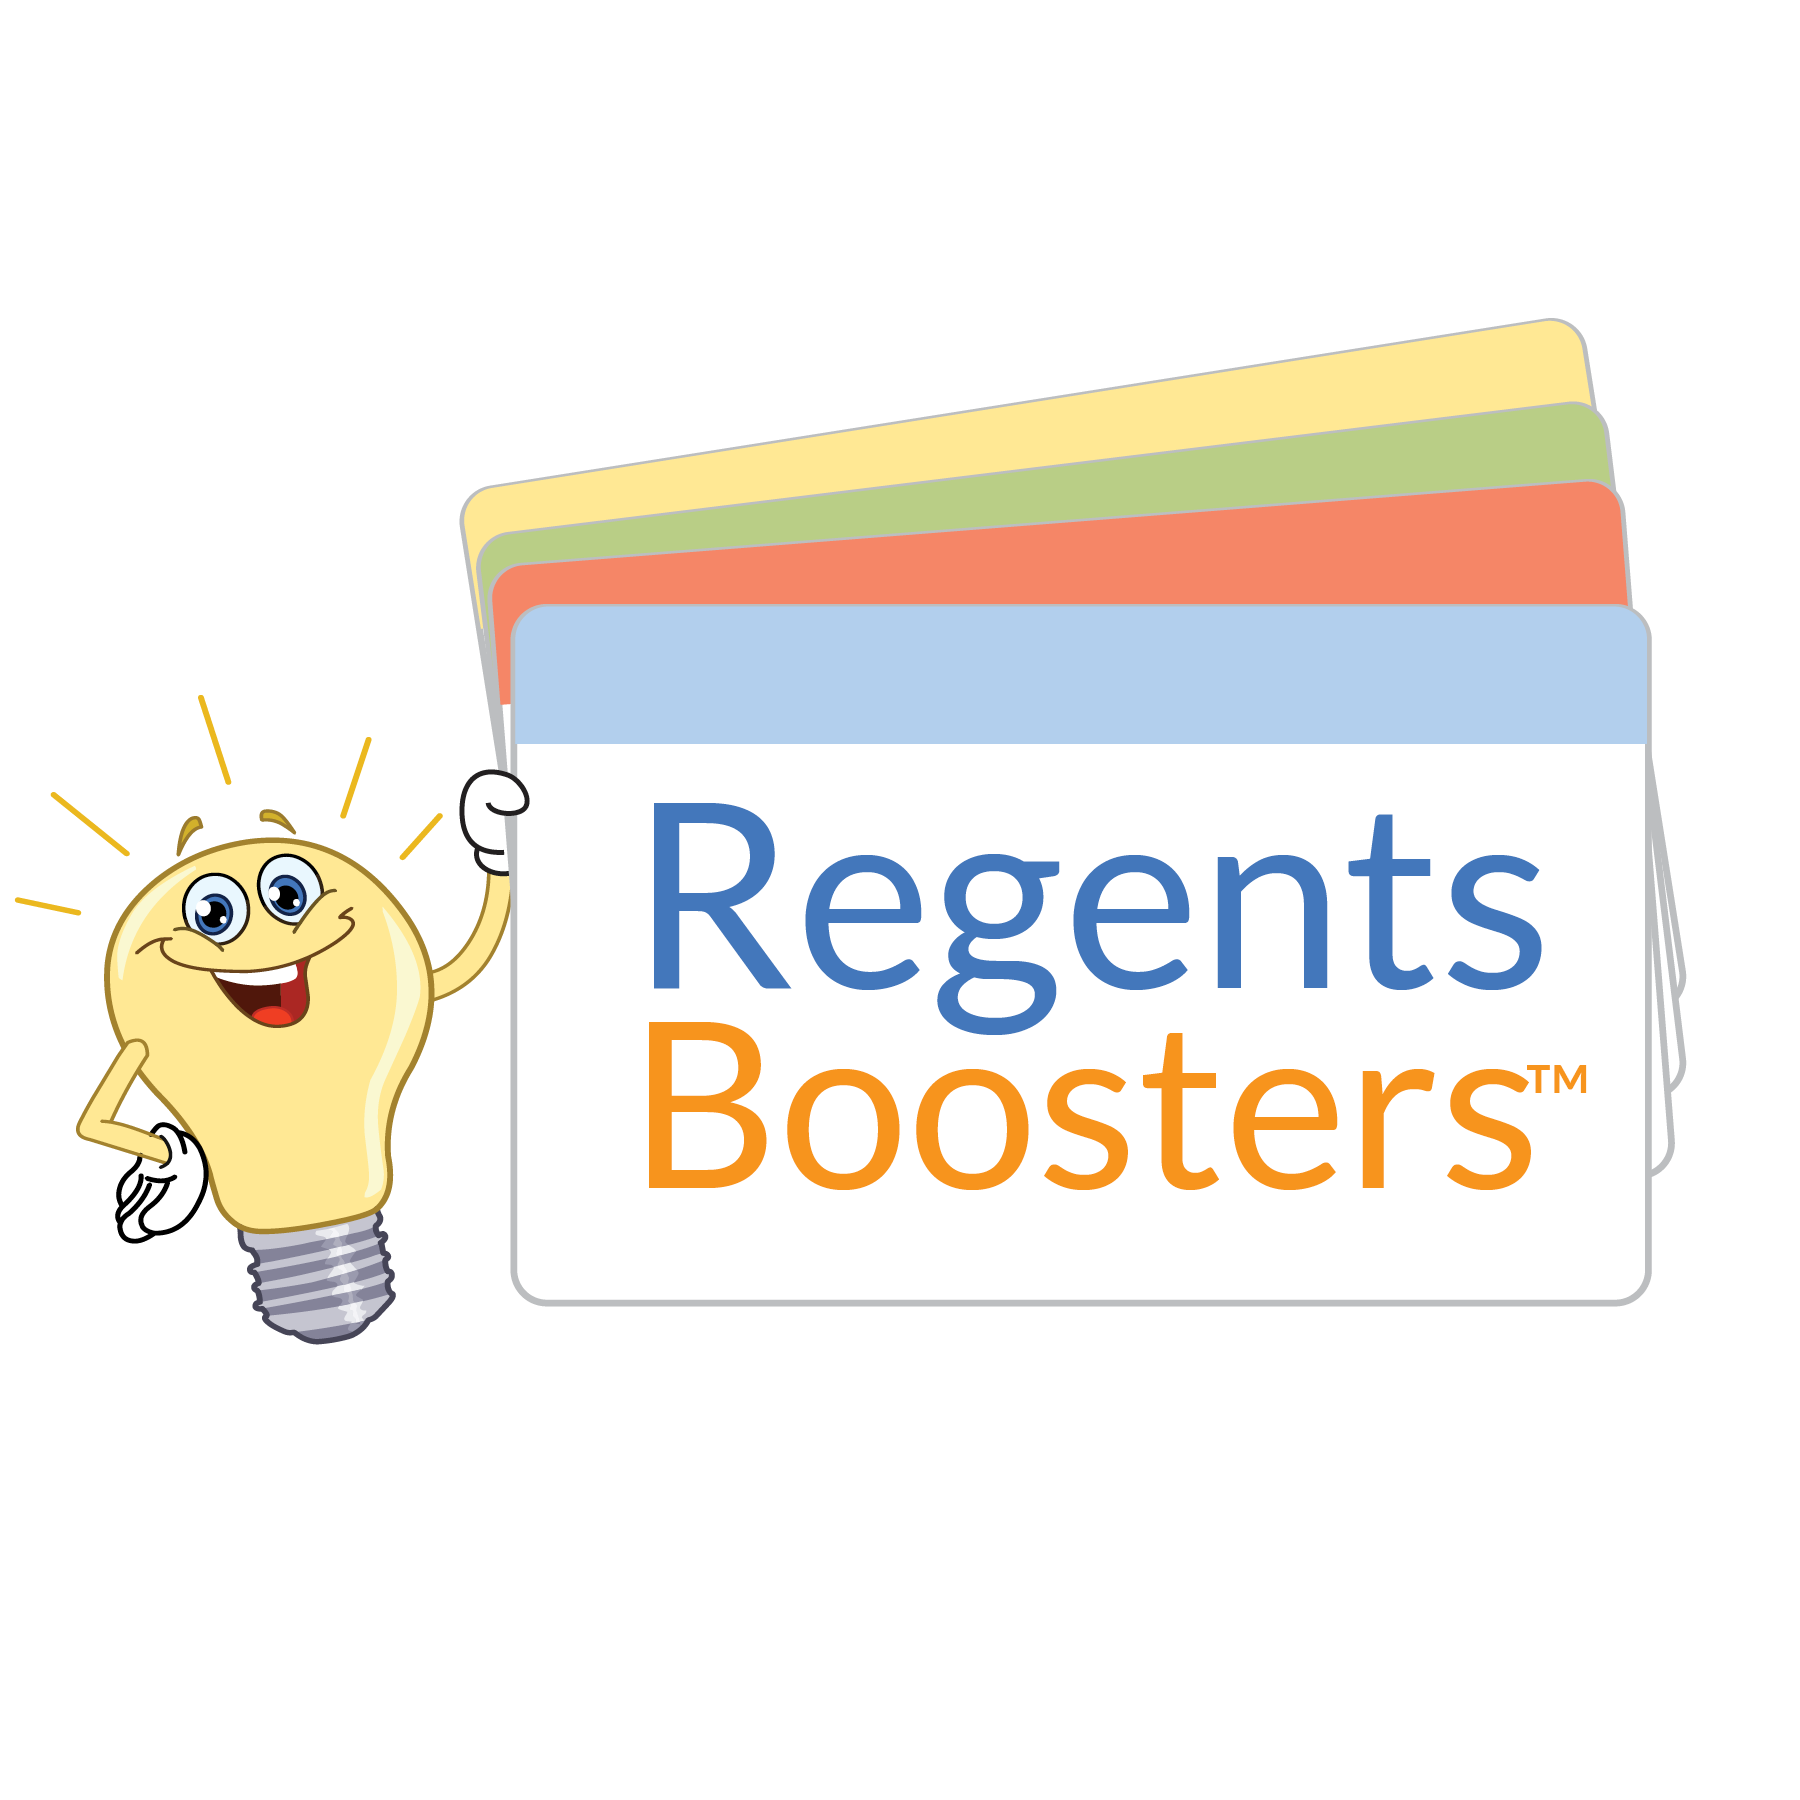 Regents Boosters Academy